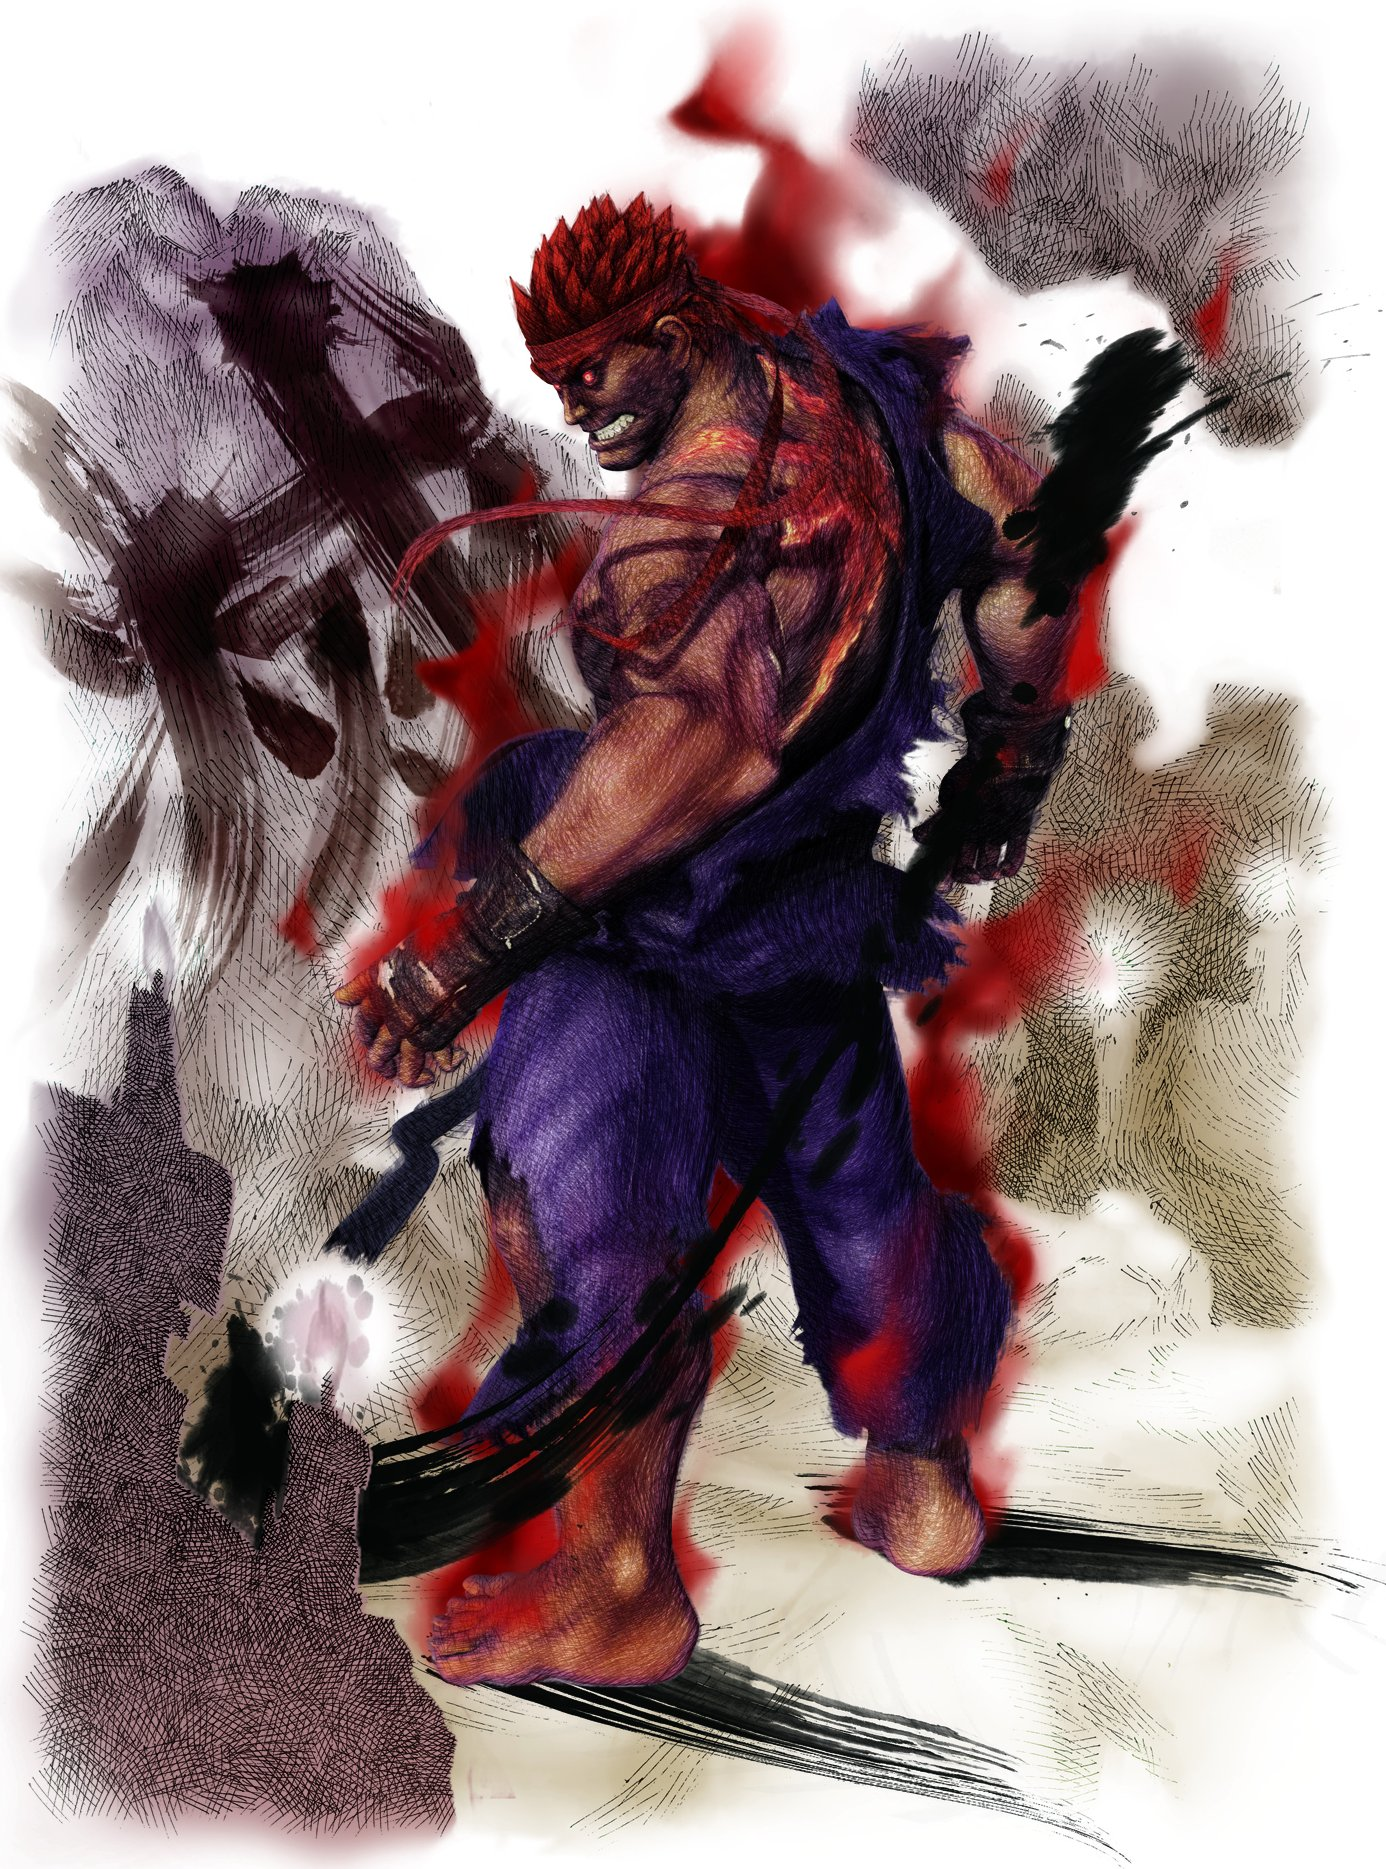 Free Download Street Fighter Evil Ryu Wallpapers55com Best